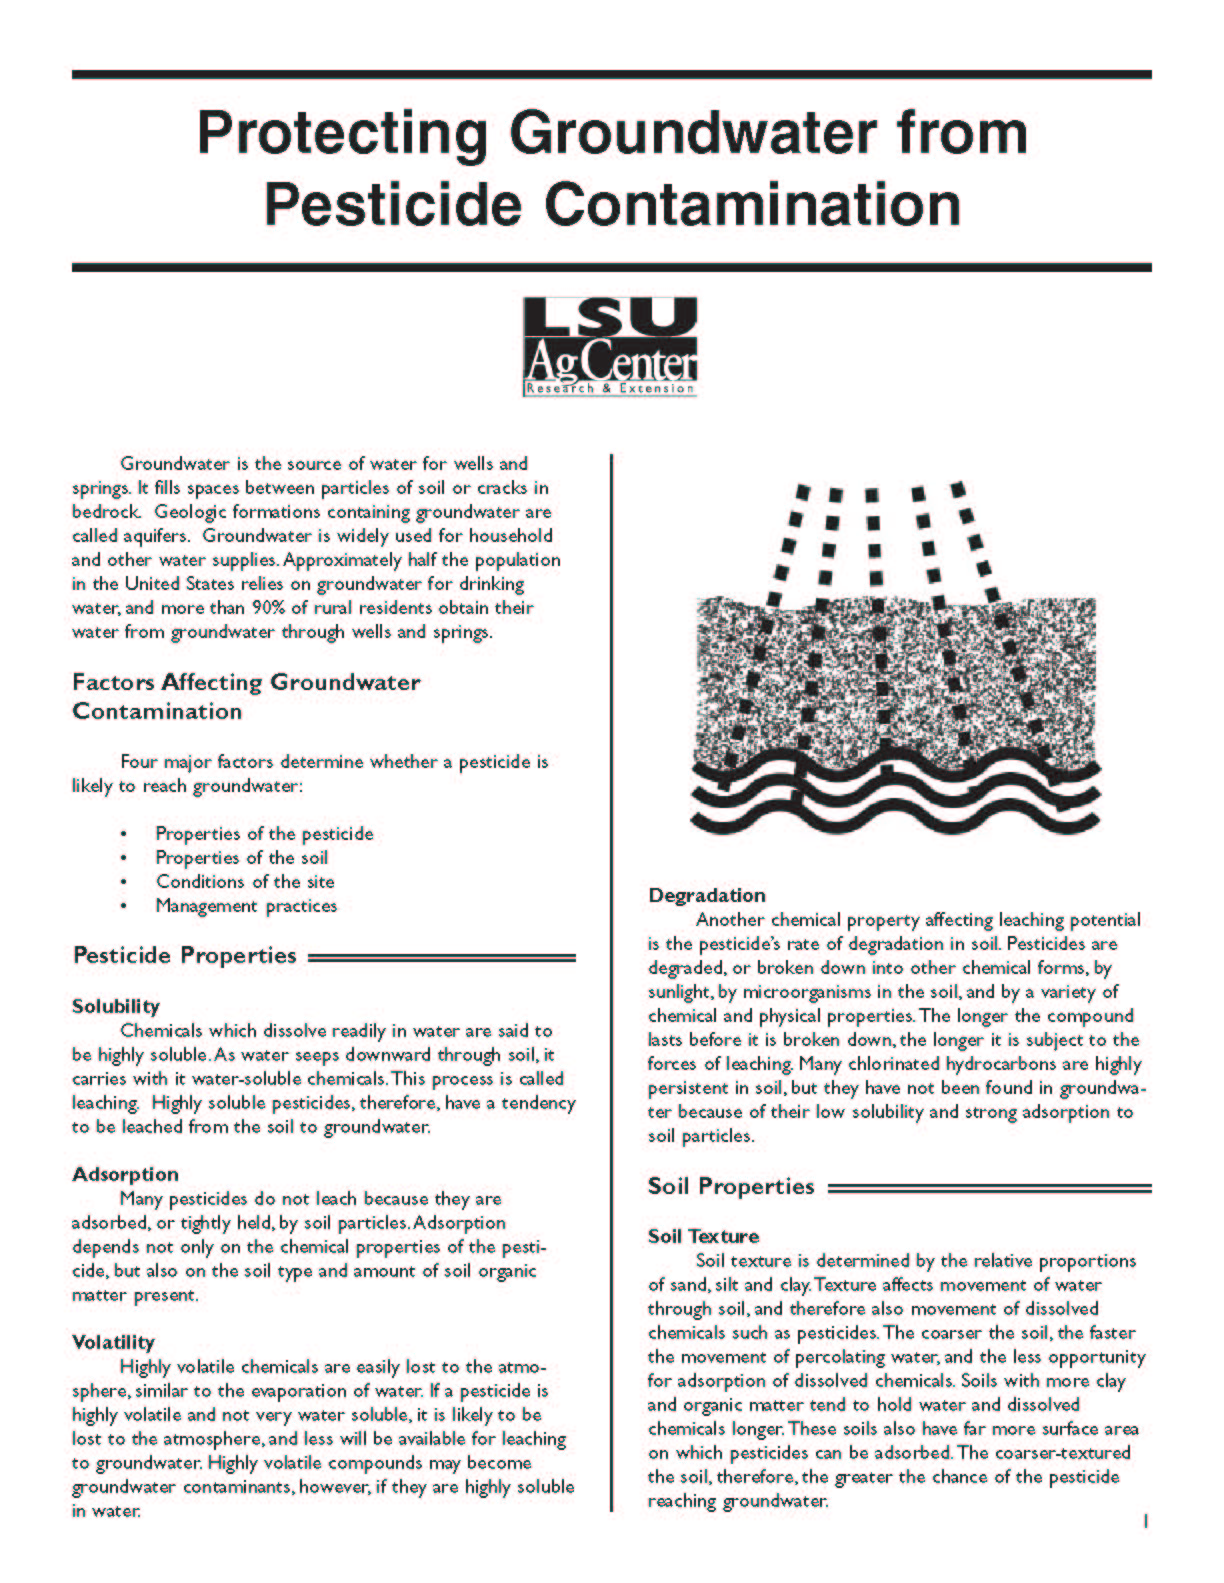 Protecting Groundwater from Pesticide Contamination